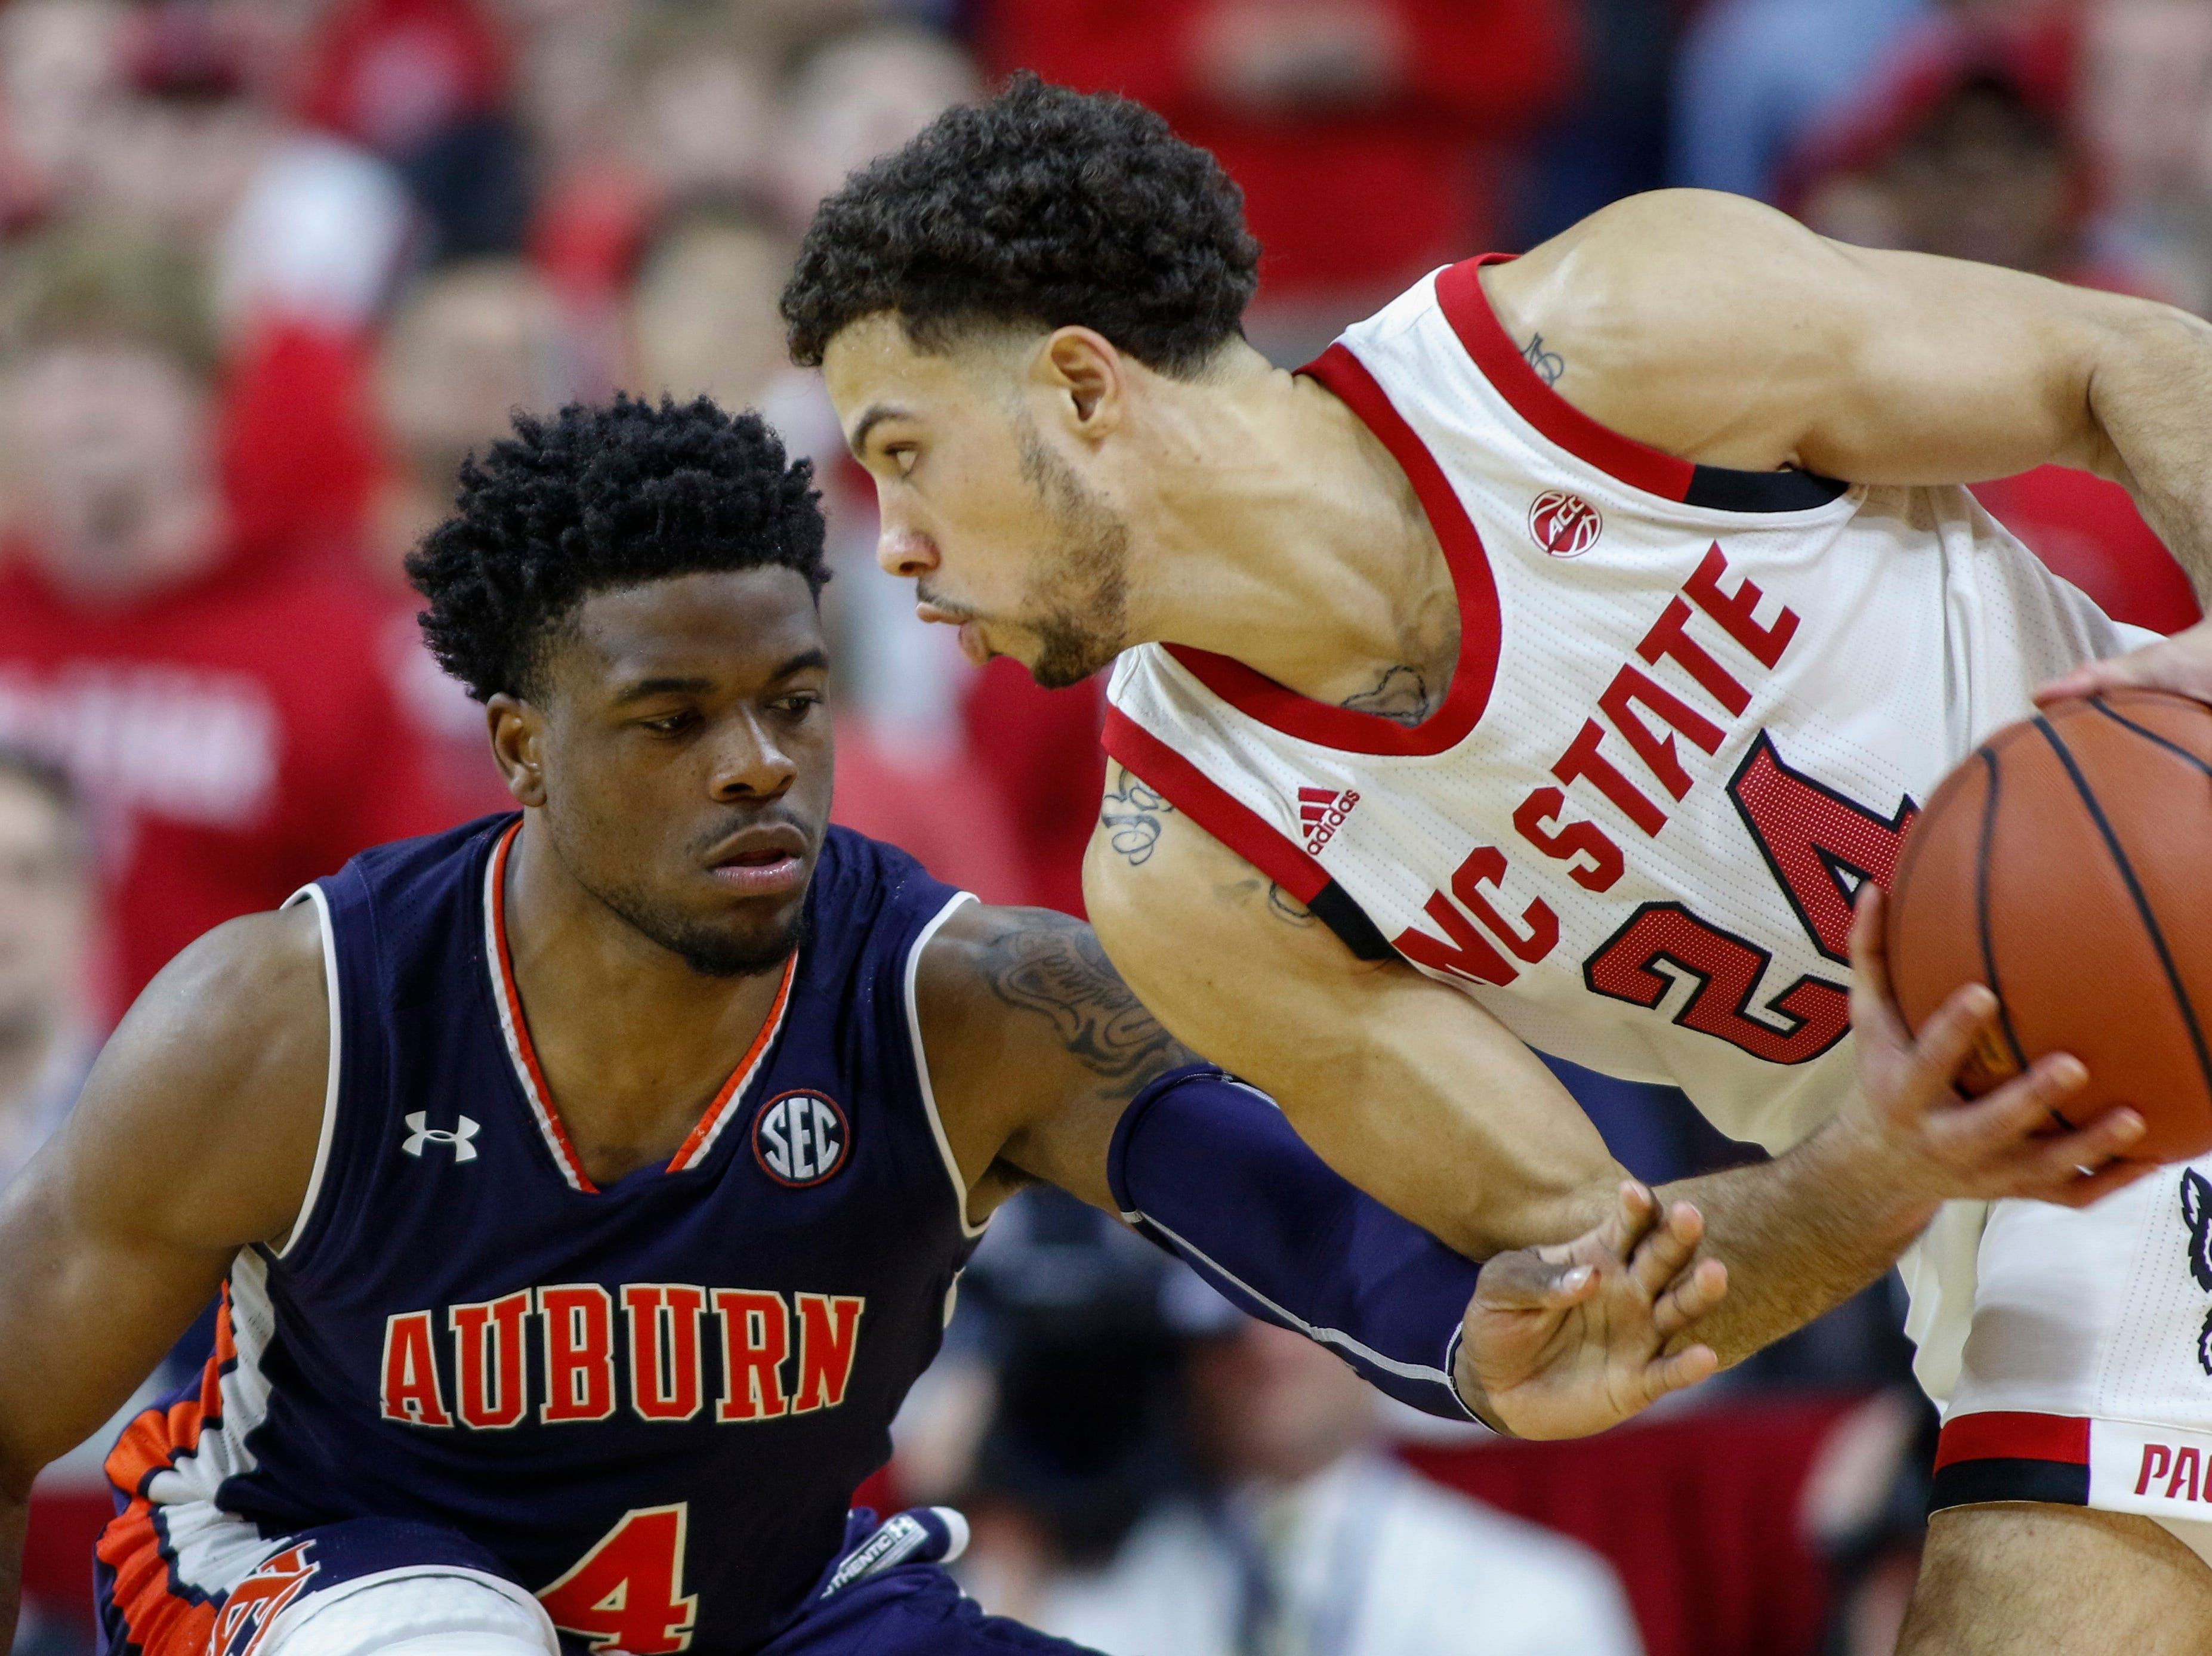 Dec 19, 2018; Raleigh, NC, USA; North Carolina State Wolfpack guard Devon Daniels (24) looks to drive against Auburn Tigers guard Malik Dunbar (4) in the second half at PNC Arena. The North Carolina State Wolfpack won 78-71. Mandatory Credit: Nell Redmond-USA TODAY Sports